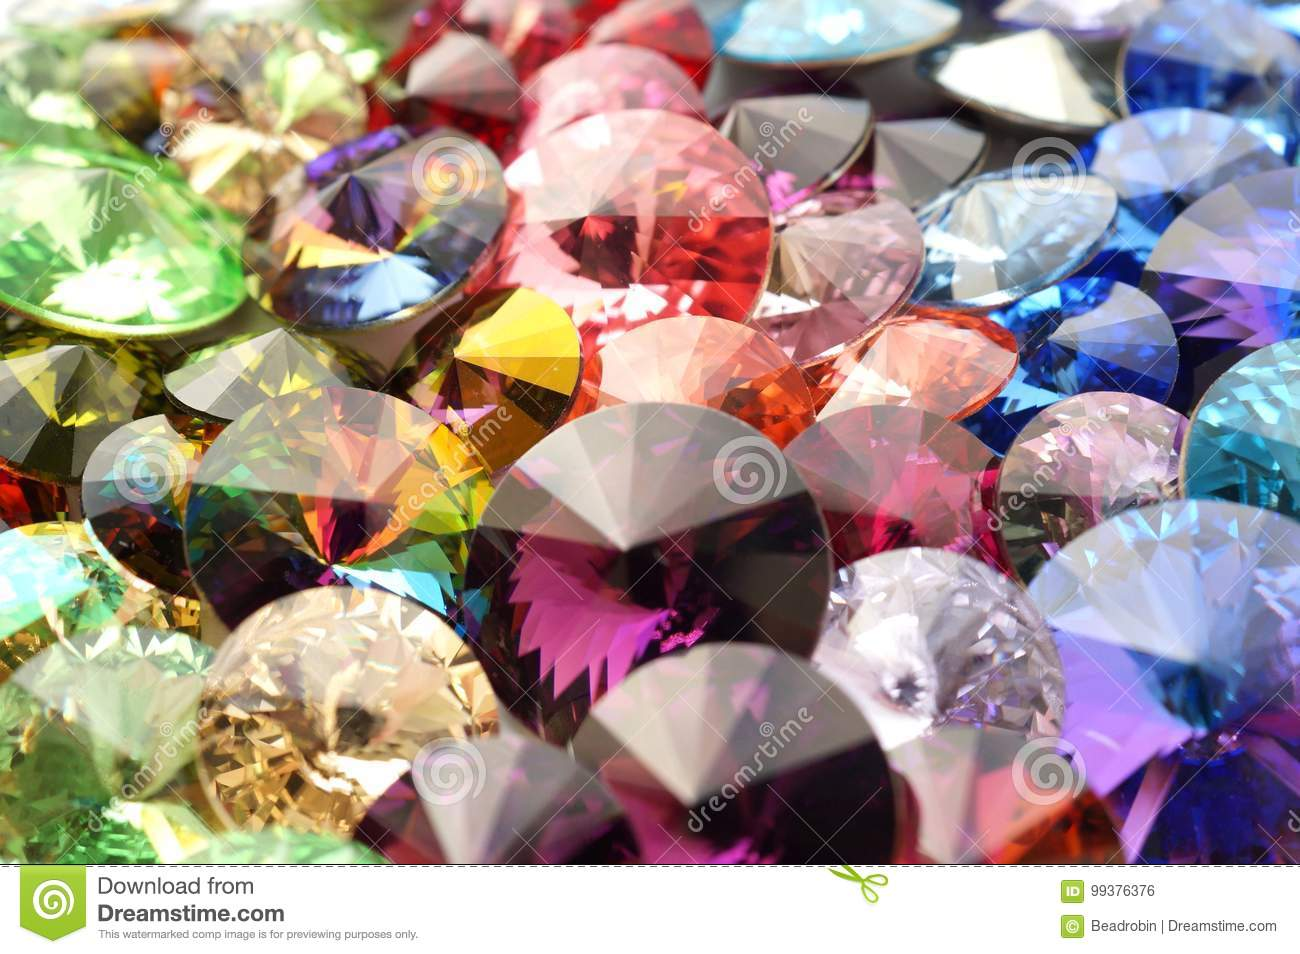 Rainbow Crystals Faceted Gemstones Stock Photo - Image of